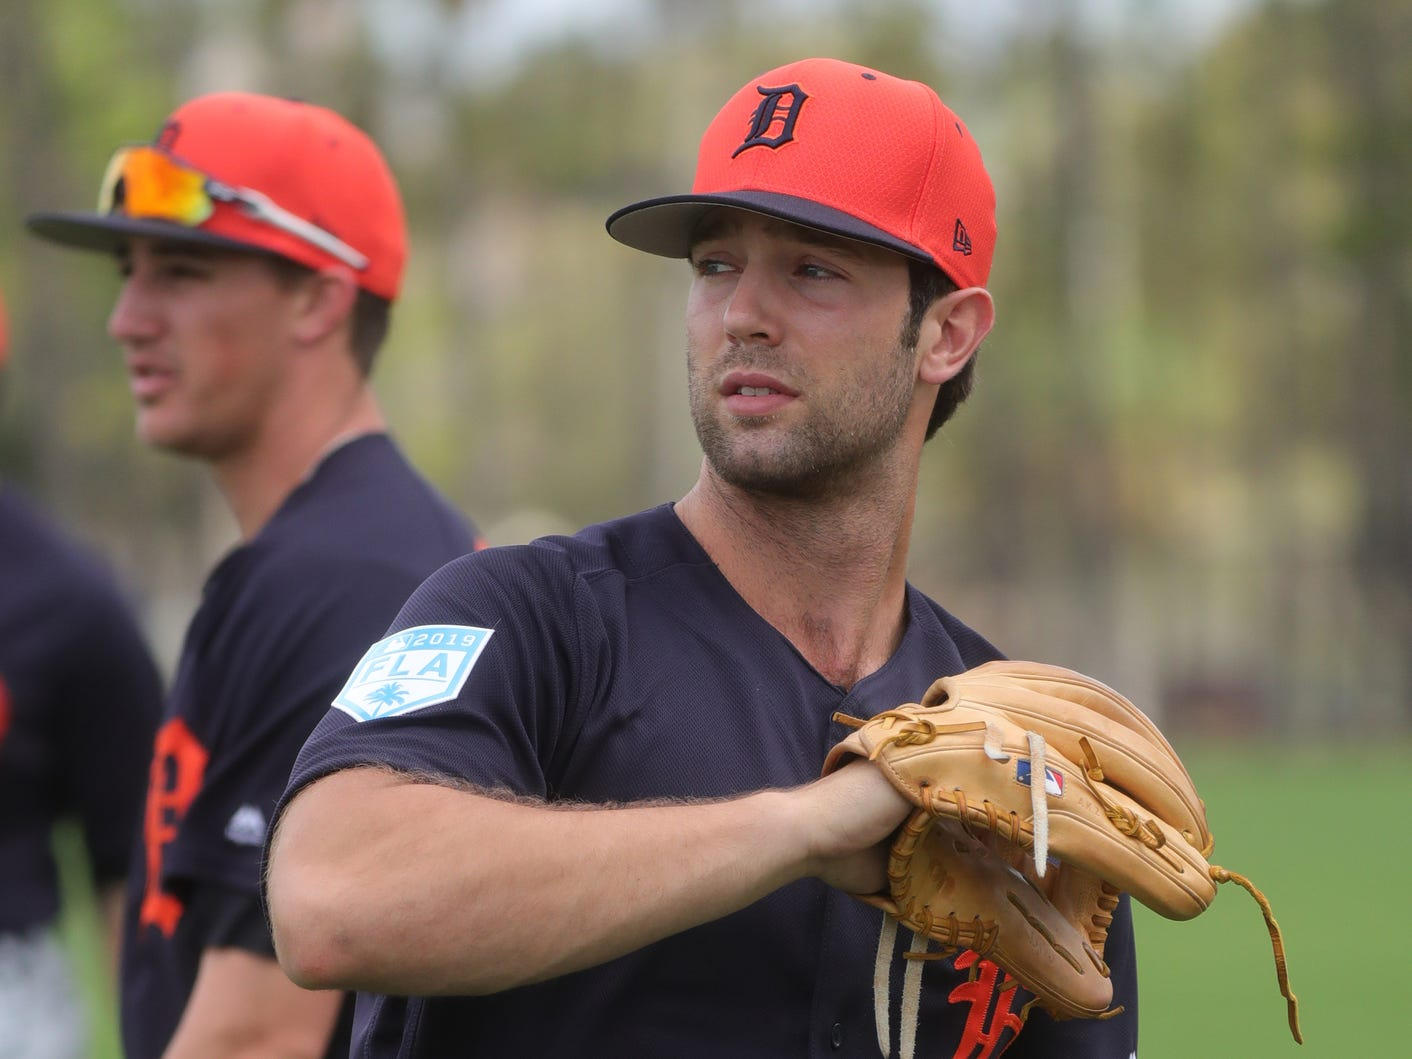 Tigers pitcher Daniel Norris warms up during spring training on Wednesday, Feb. 20, 2019, at Joker Marchant Stadium in Lakeland, Fla.